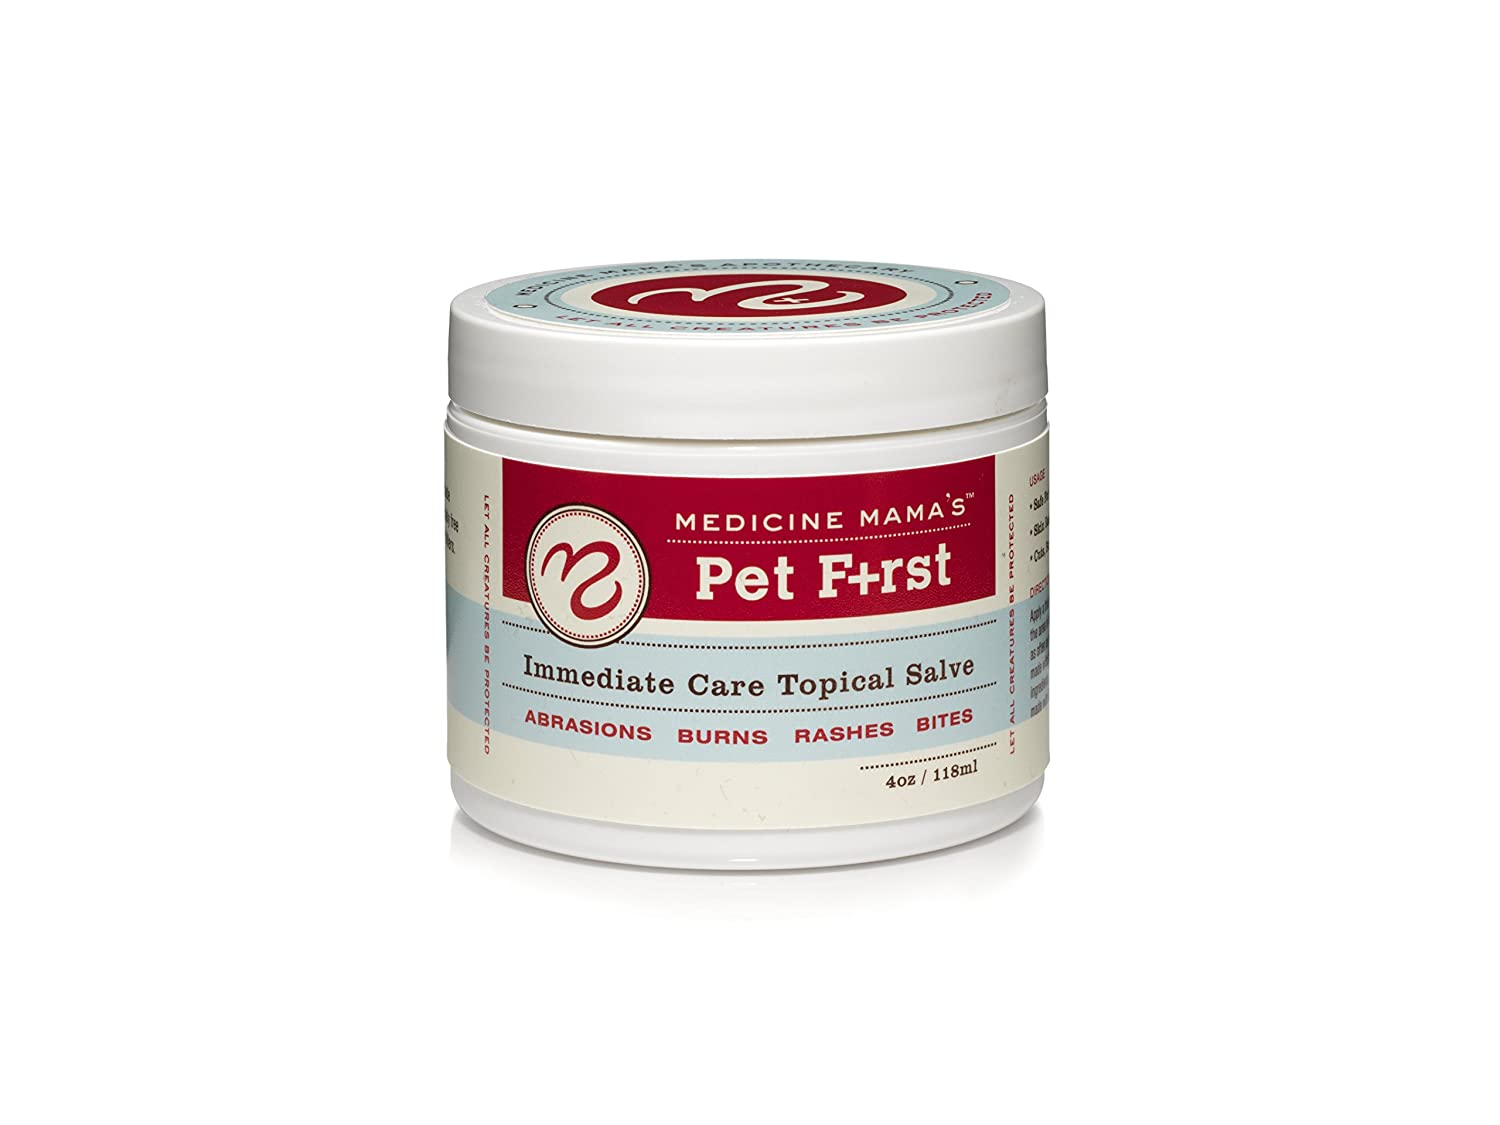 Medicine Mama's Apothecary Pet First Immediate Care Topical Salve For Dogs, Cats, Horses, and Furry Friends used for Abrasions Burns Rashes Bites, 4 ounce джемпер medicine medicine me024emvqq10